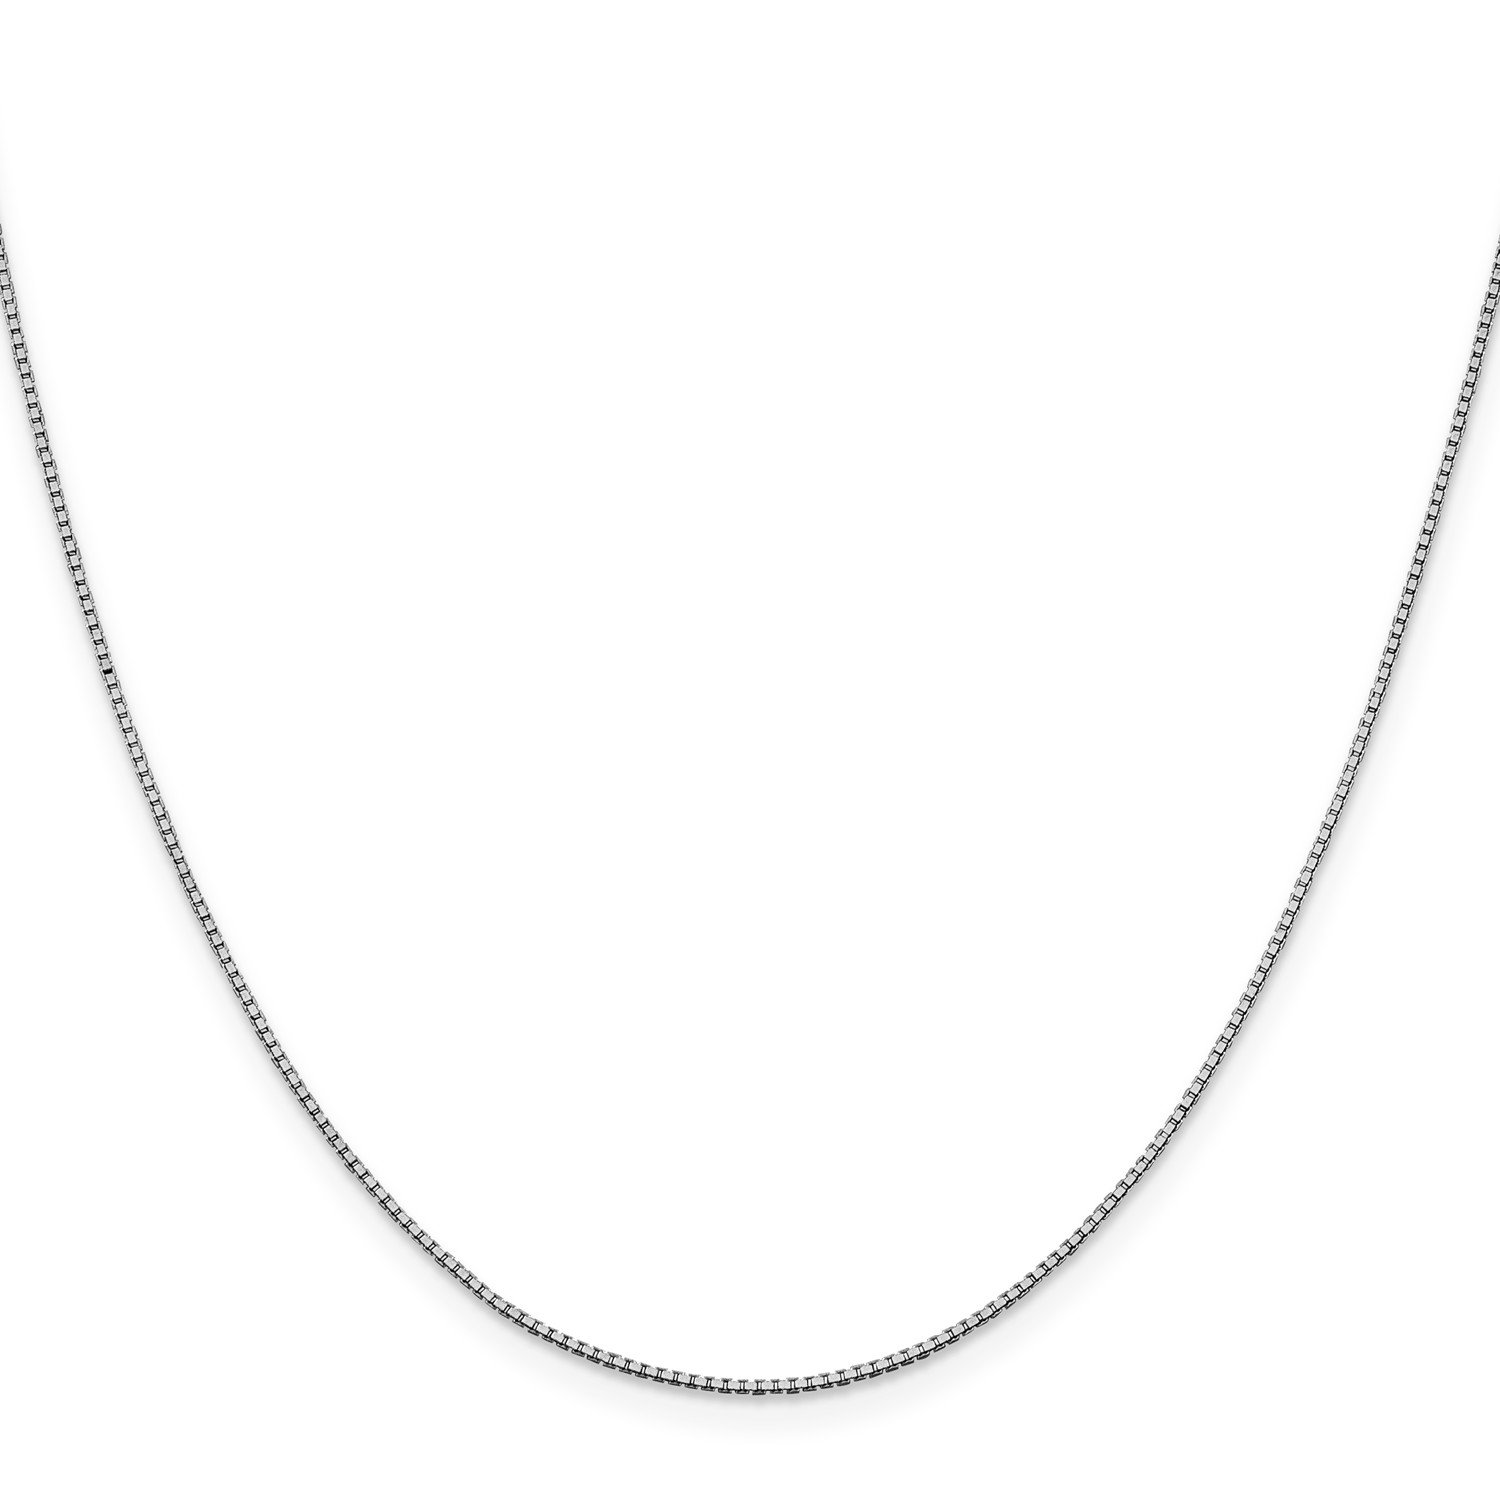 Roy Rose Jewelry 10K White Gold 1mm Box Chain Necklace ~ Length 20'' inches